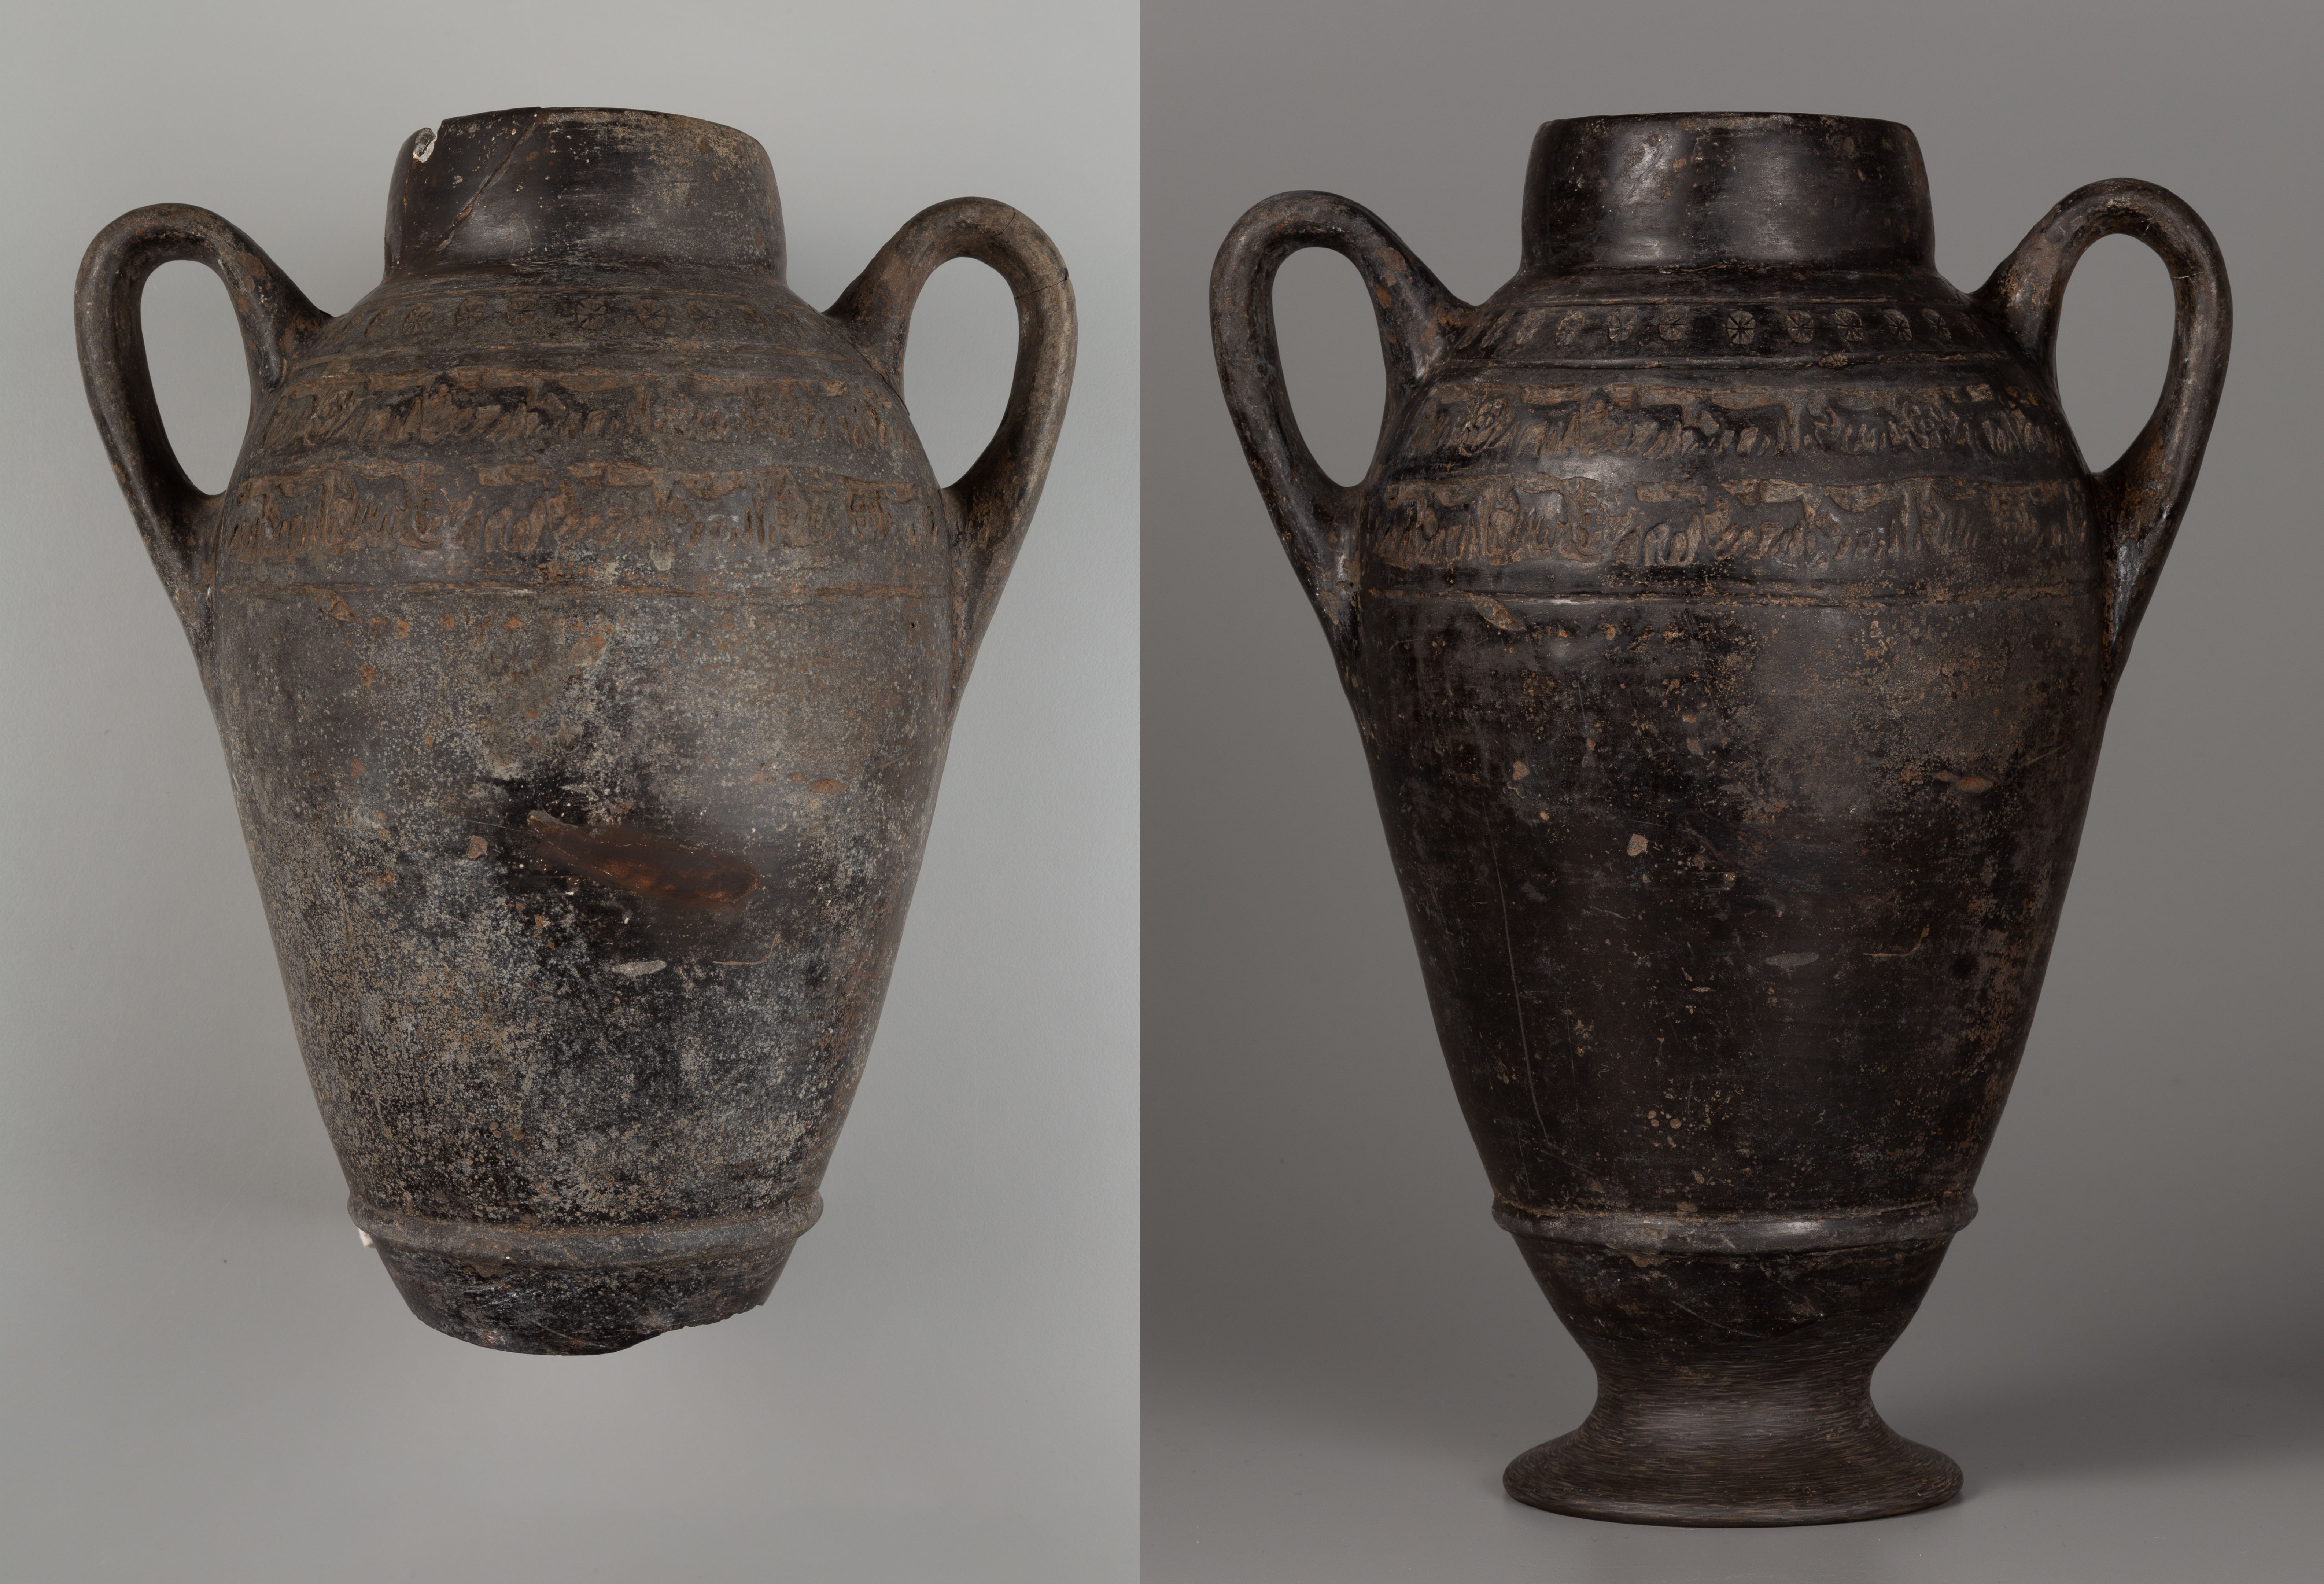 There are two images side by side of a dark brown vessel with two curved handles. In the image on the left, the vessel has light surface crusts, dark patches, and no base. In the image on the right, the vessel's surface is shiny and dark brown and black, with a base of the same color.